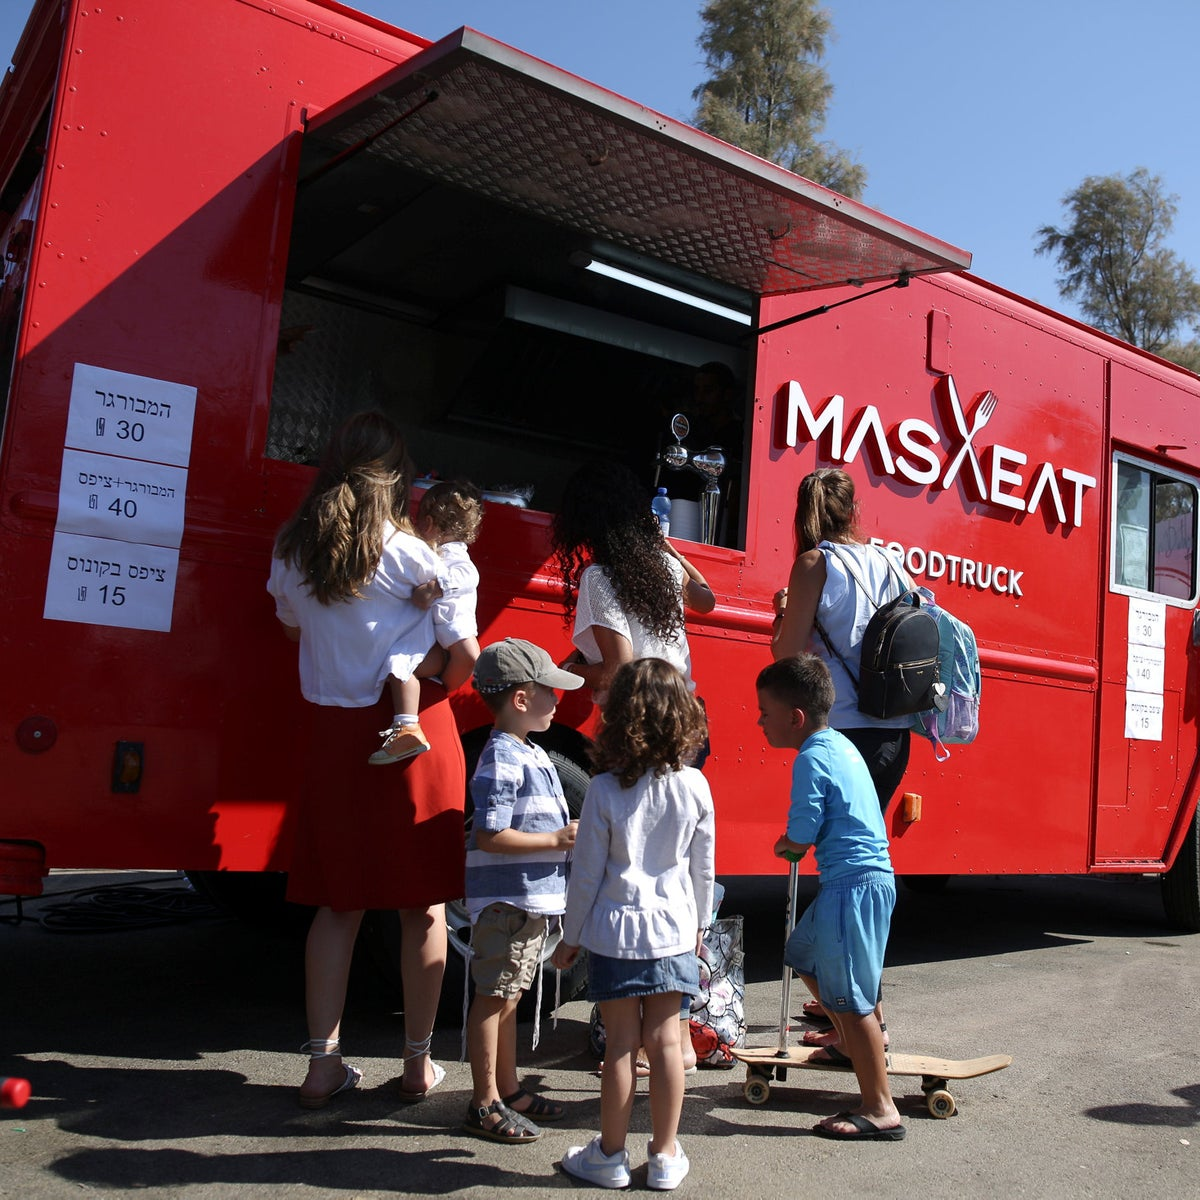 The MasaEAT food truck in Ashdod. Once a FedEx vehicle, now delivering hamburgers all around Israel.